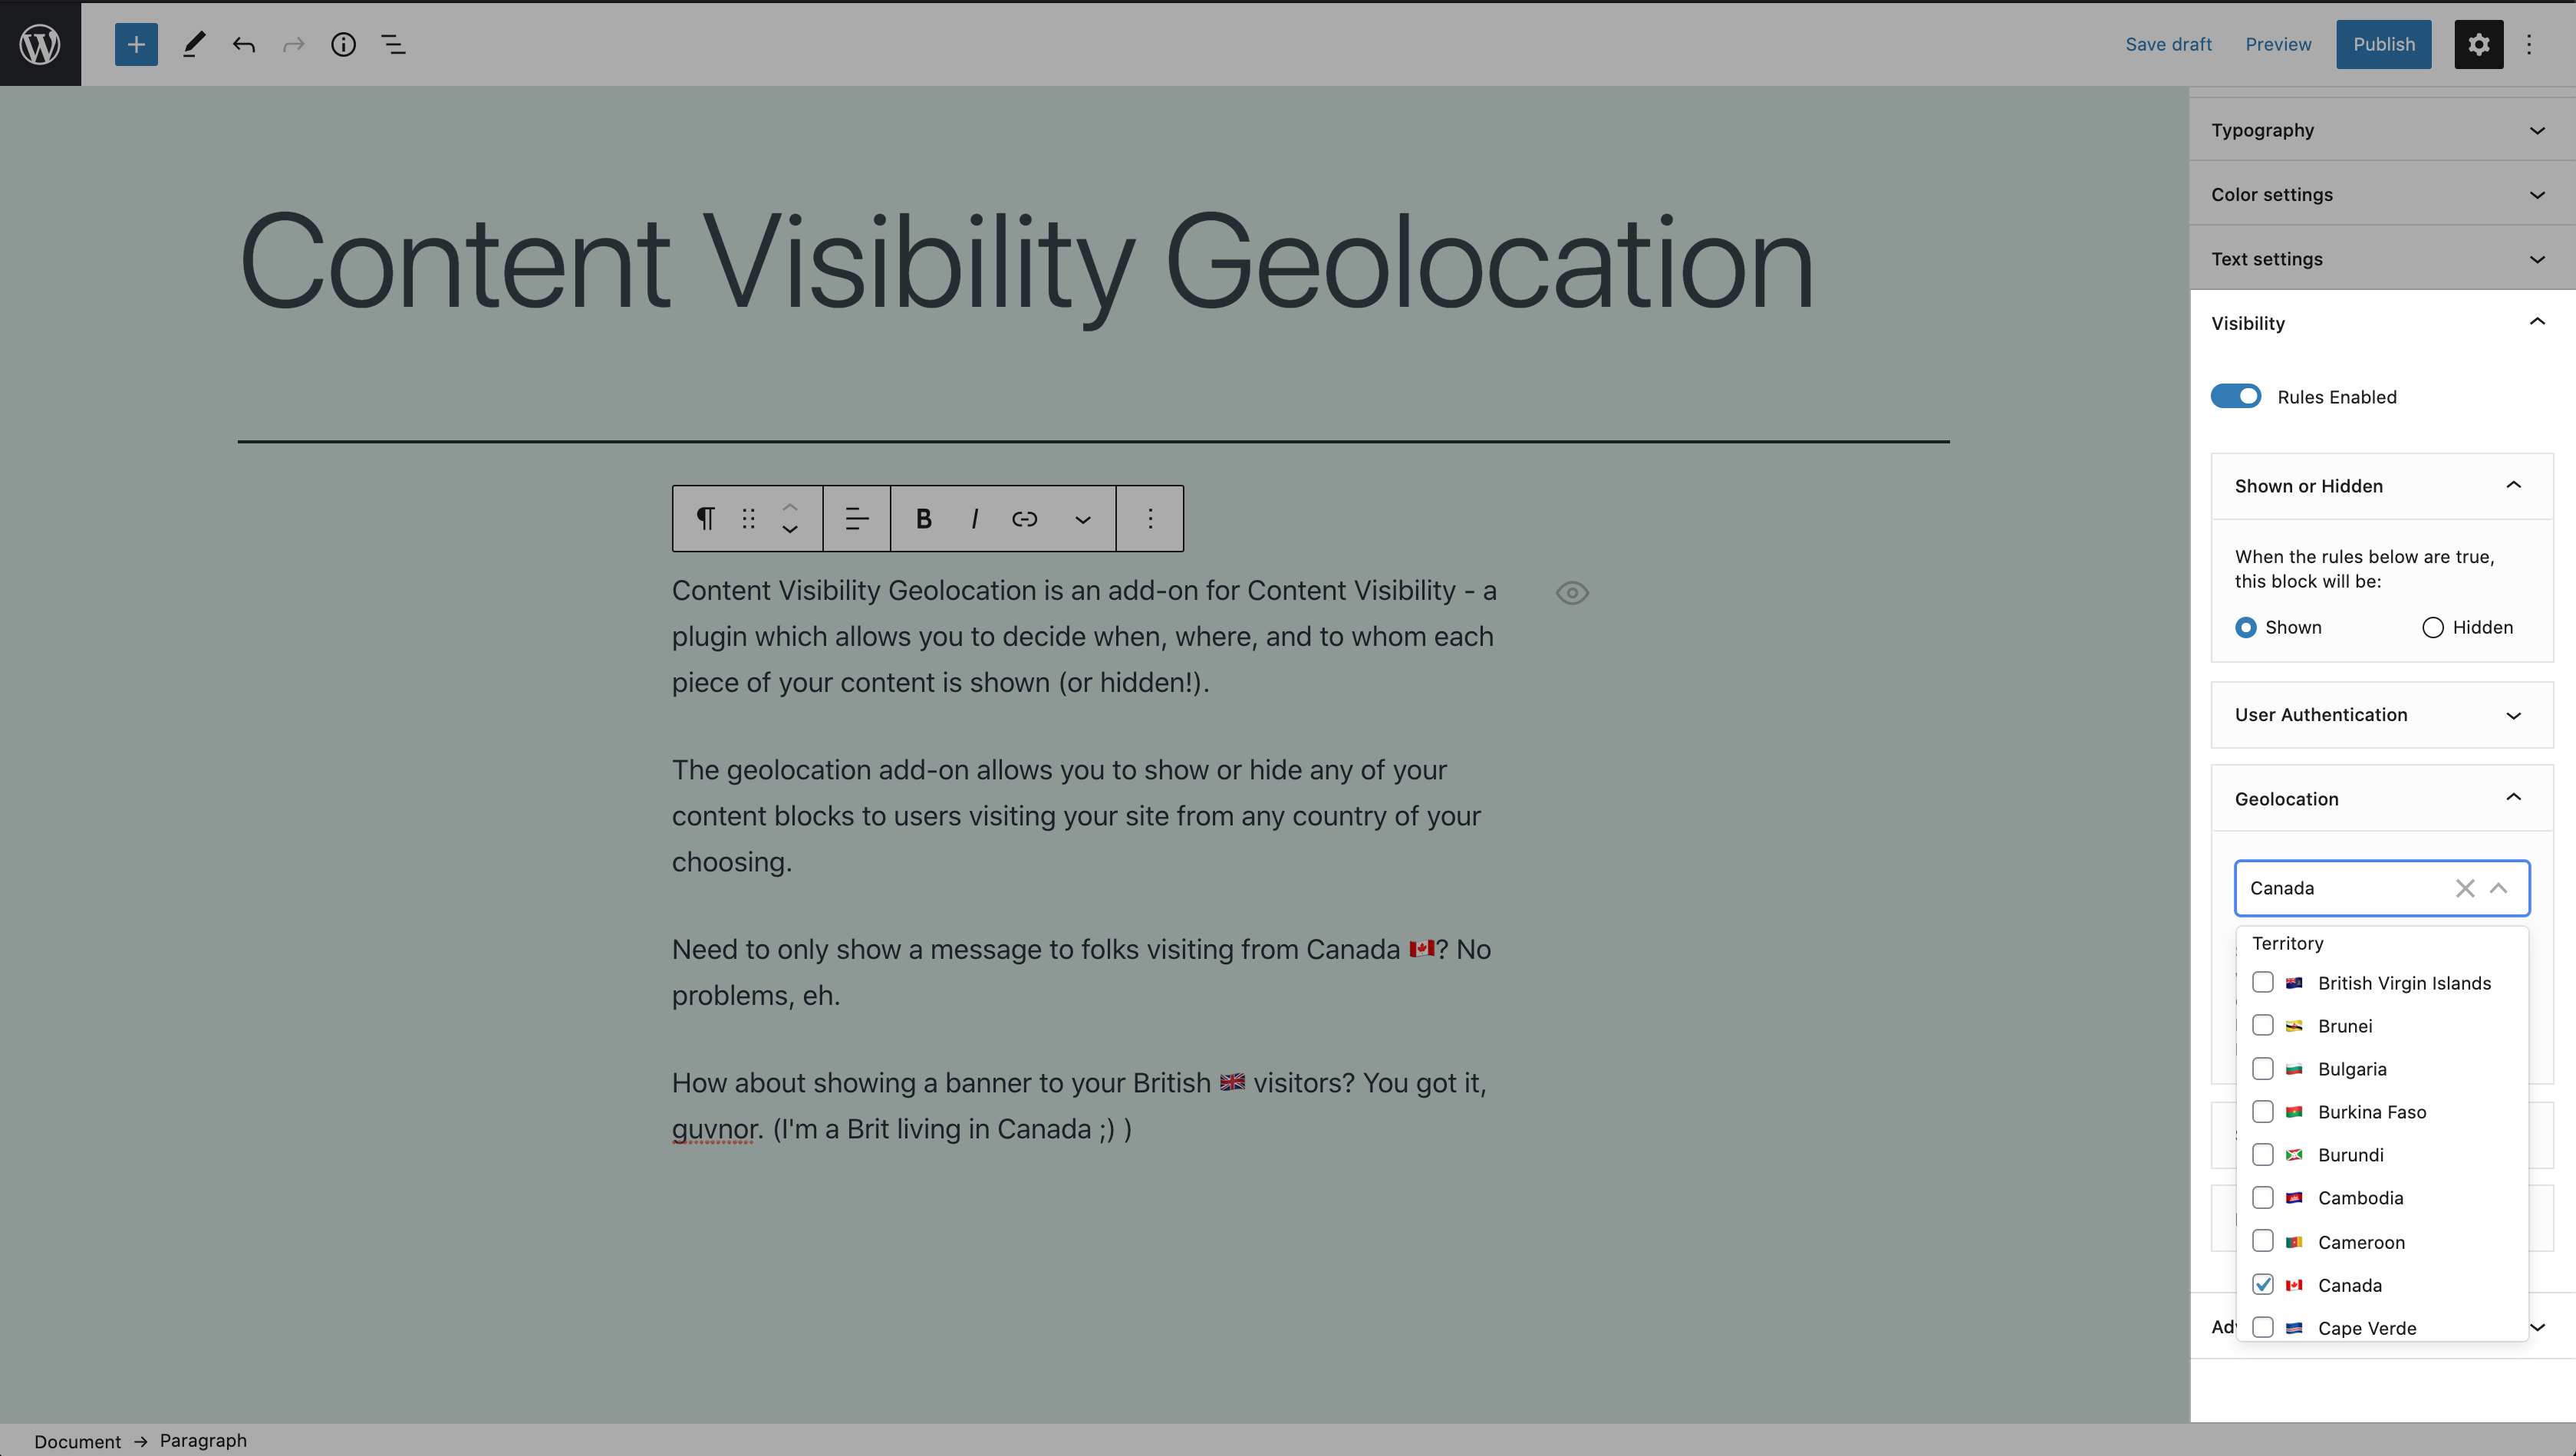 Showing the content visibility geolocation controls in the content editor sidebar